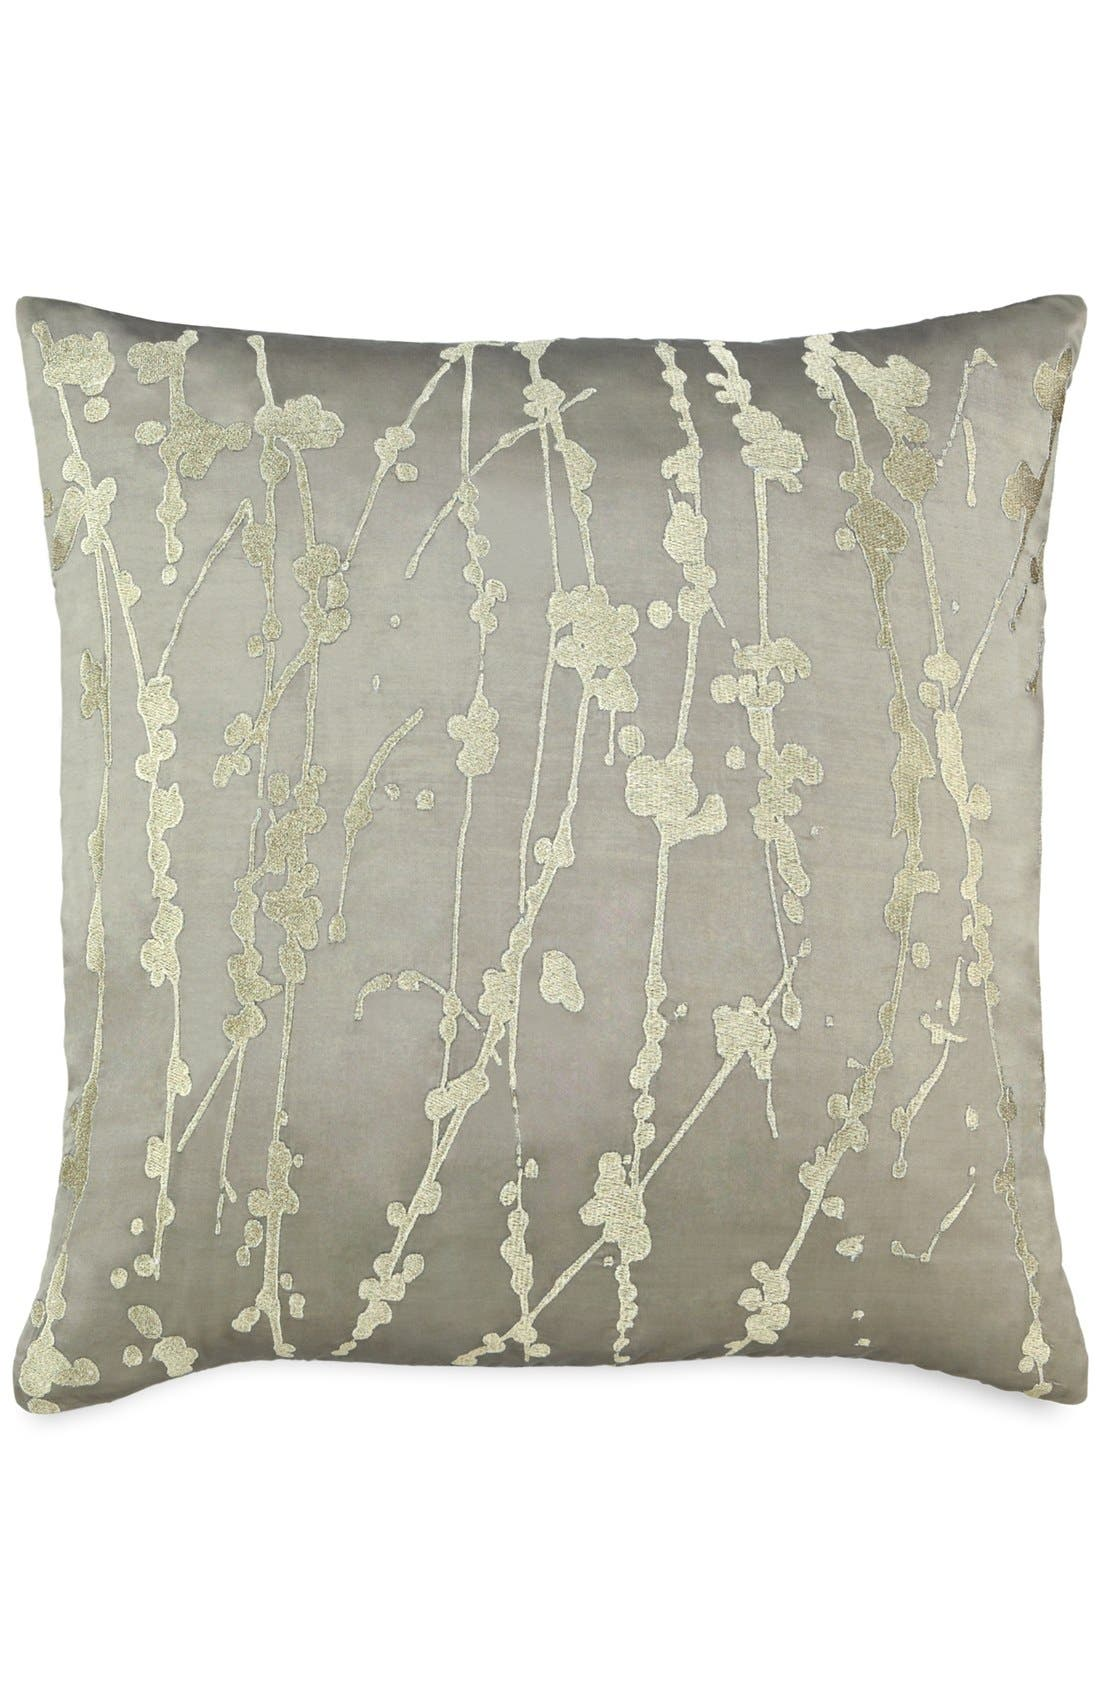 Alternate Image 1 Selected - Donna Karan Metallic Embroidered Silk Pillow (Online Only)